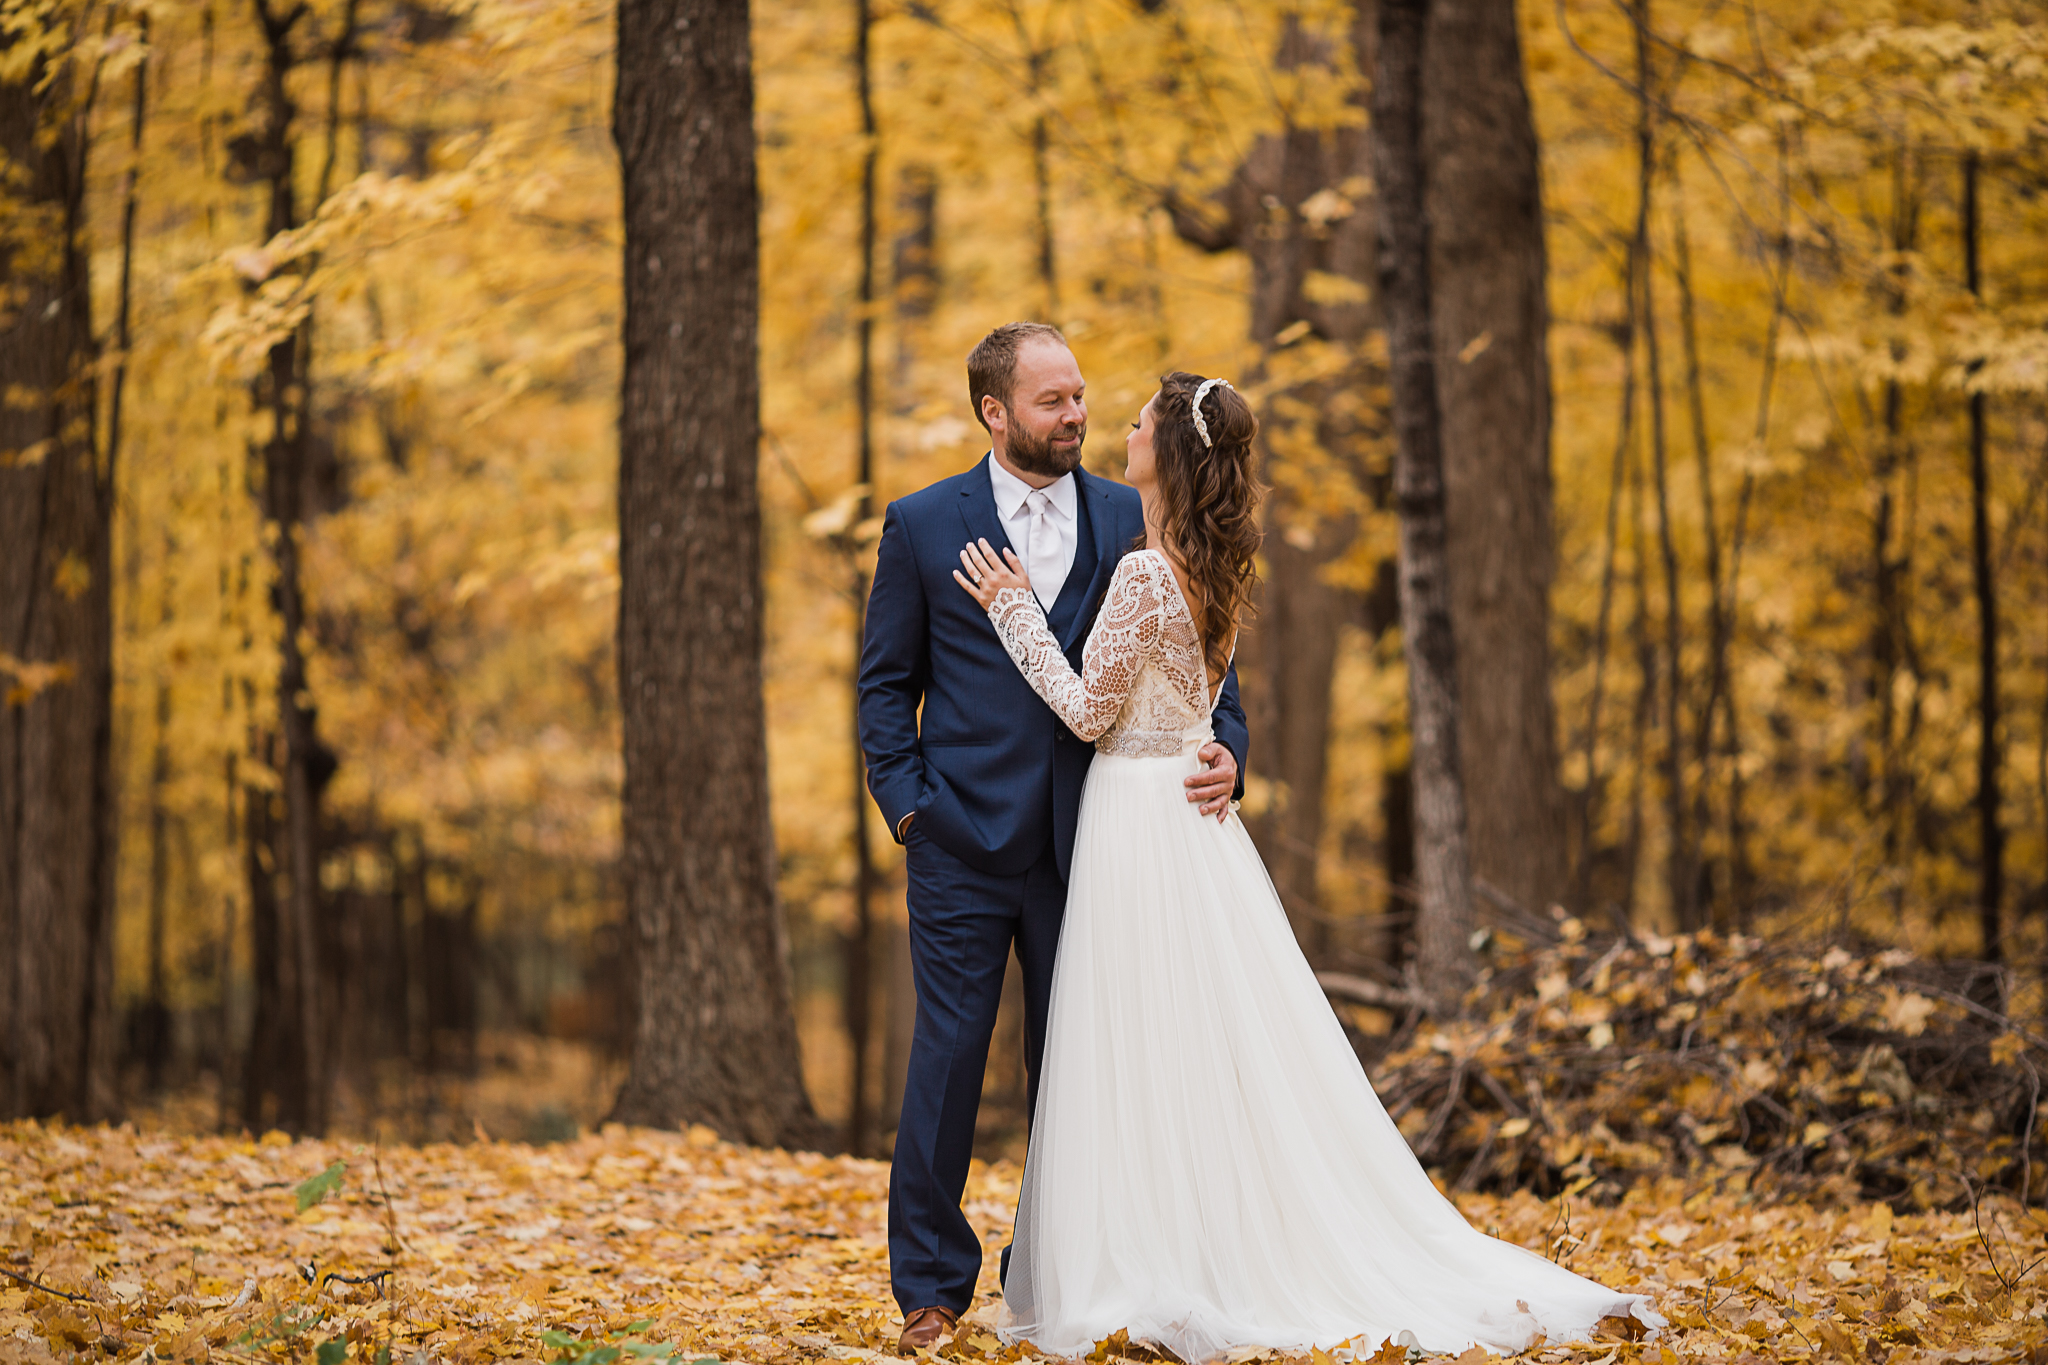 bride and groom posing outdoors in fall